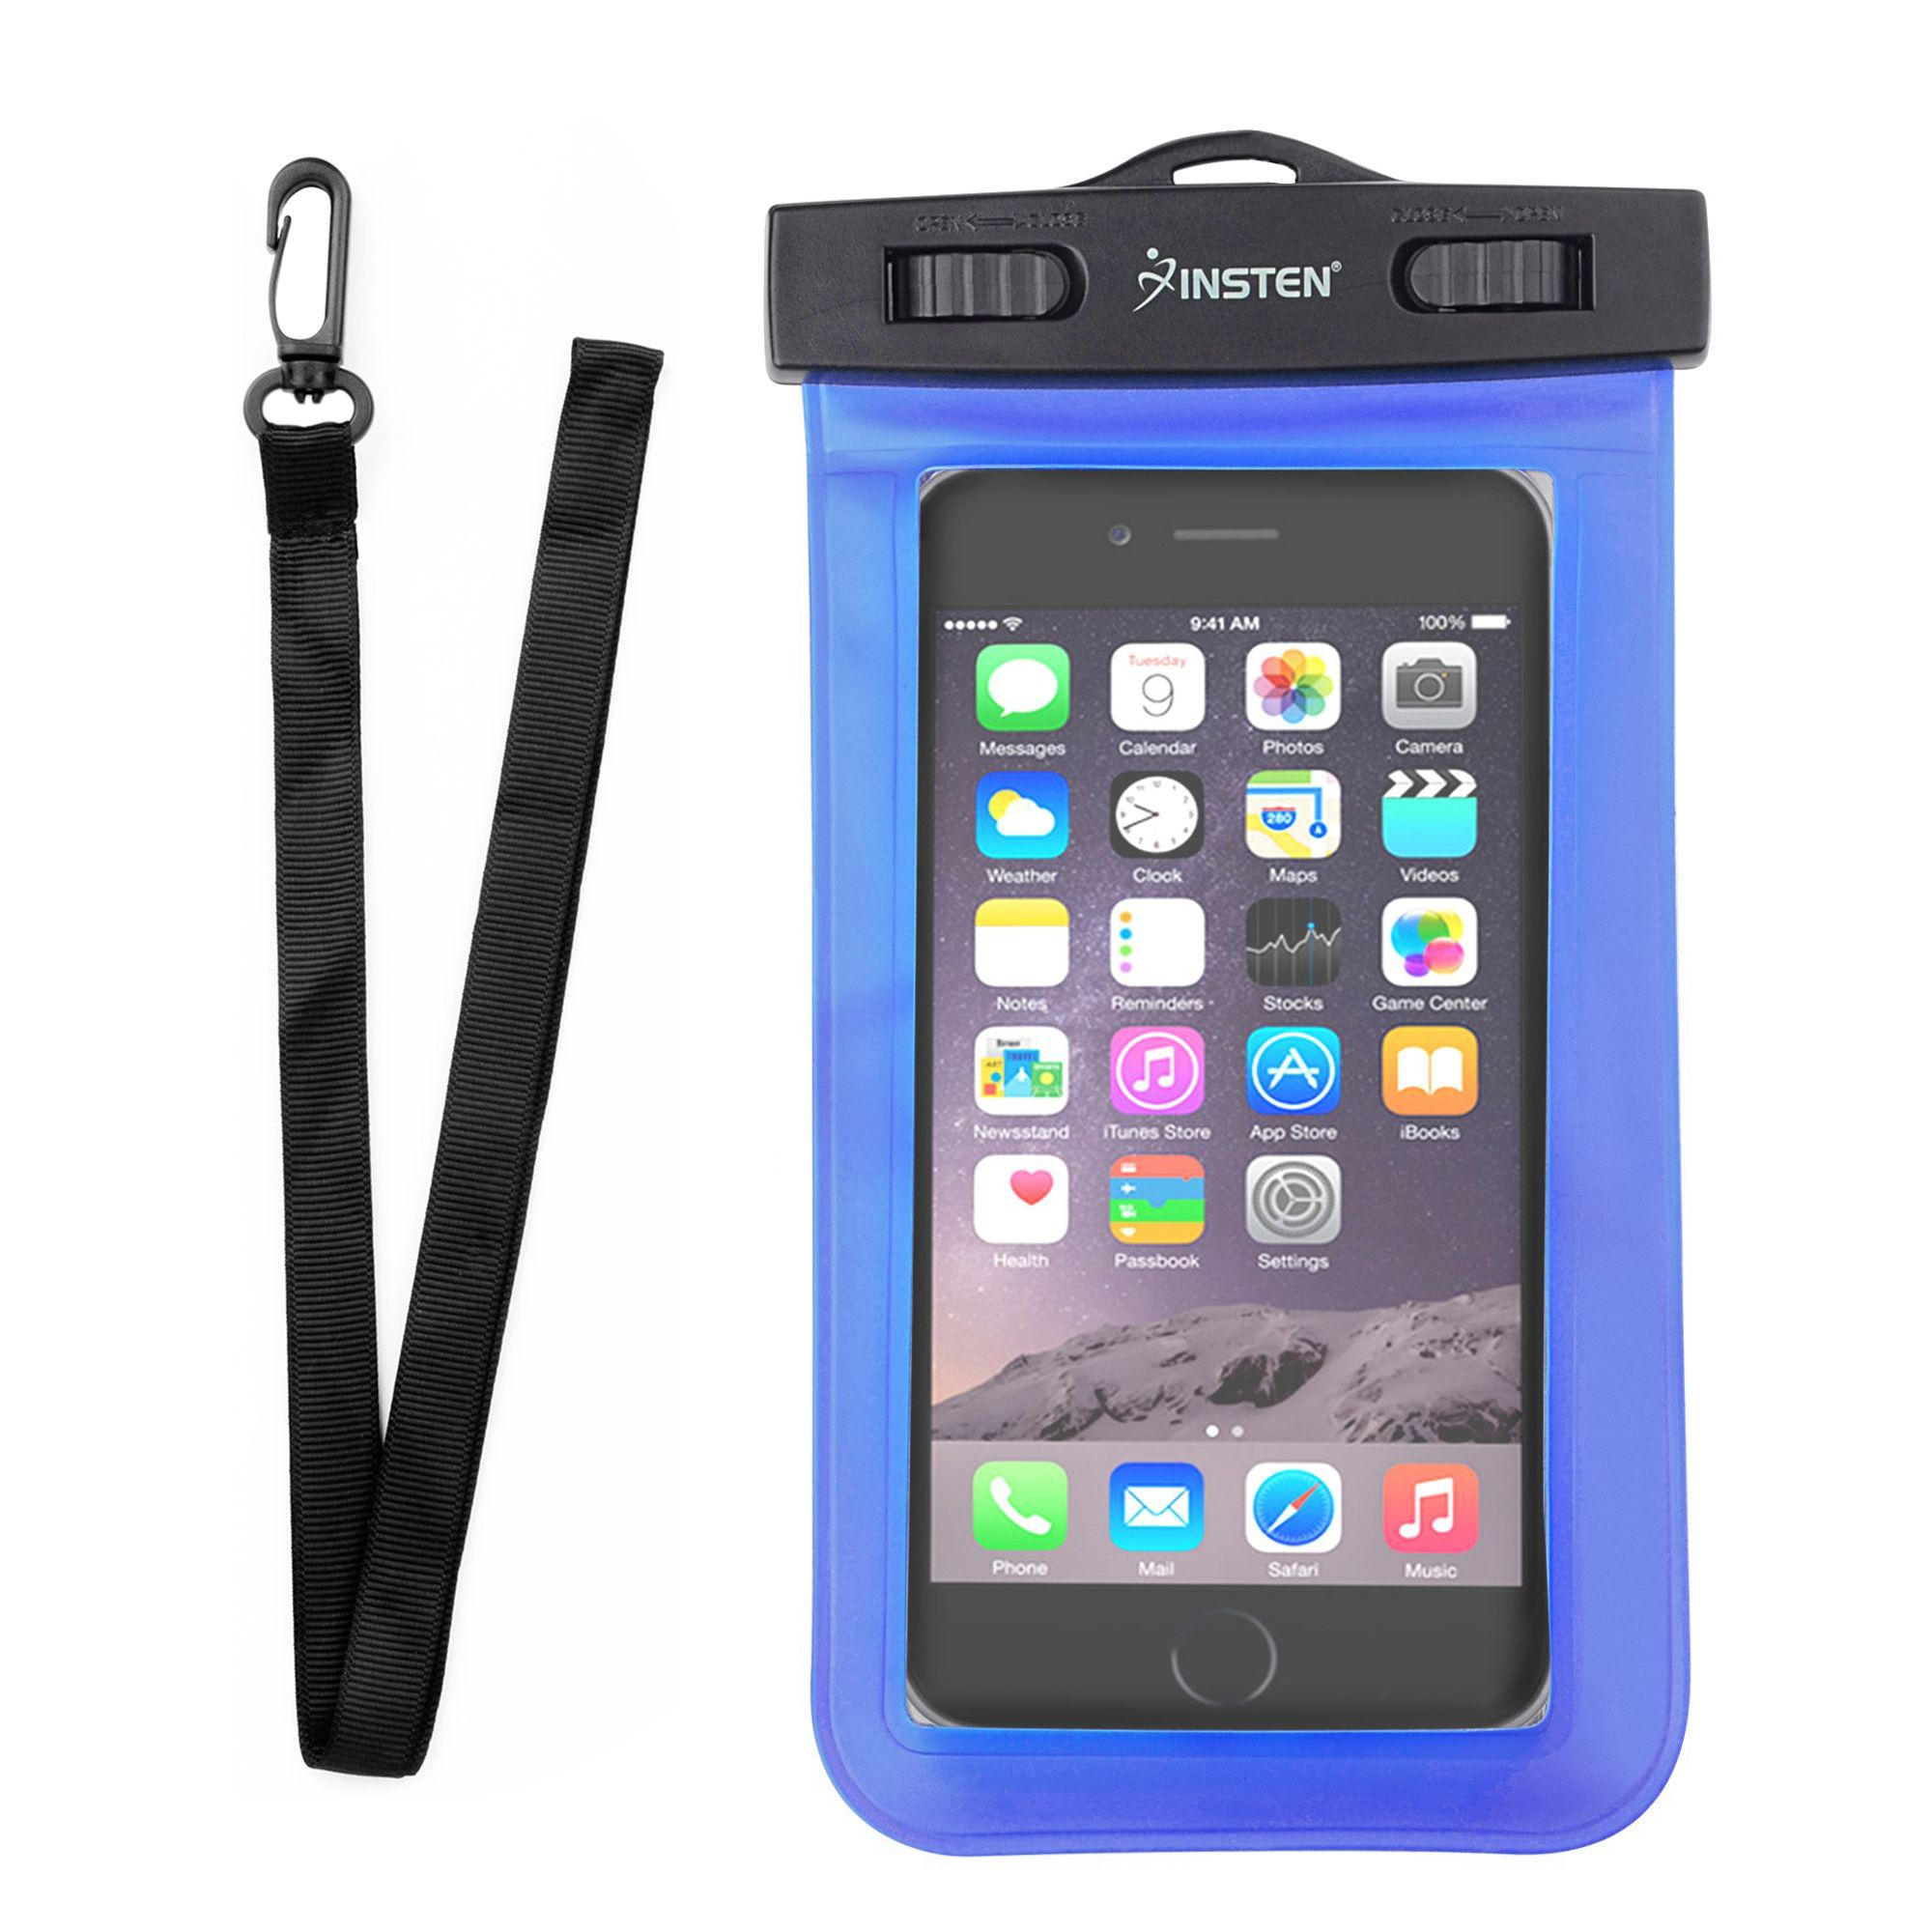 Insten Blue Waterproof Bag Carrying Case Pouch (6.5 x 3.9 inches) with Lanyard & Armband for iPhone XS Max XR XS X 8 7 6 6S+ 5S Samsung Galaxy S9+ S8 J7 ZTE ZMax Pro Universal -up to 3 meter